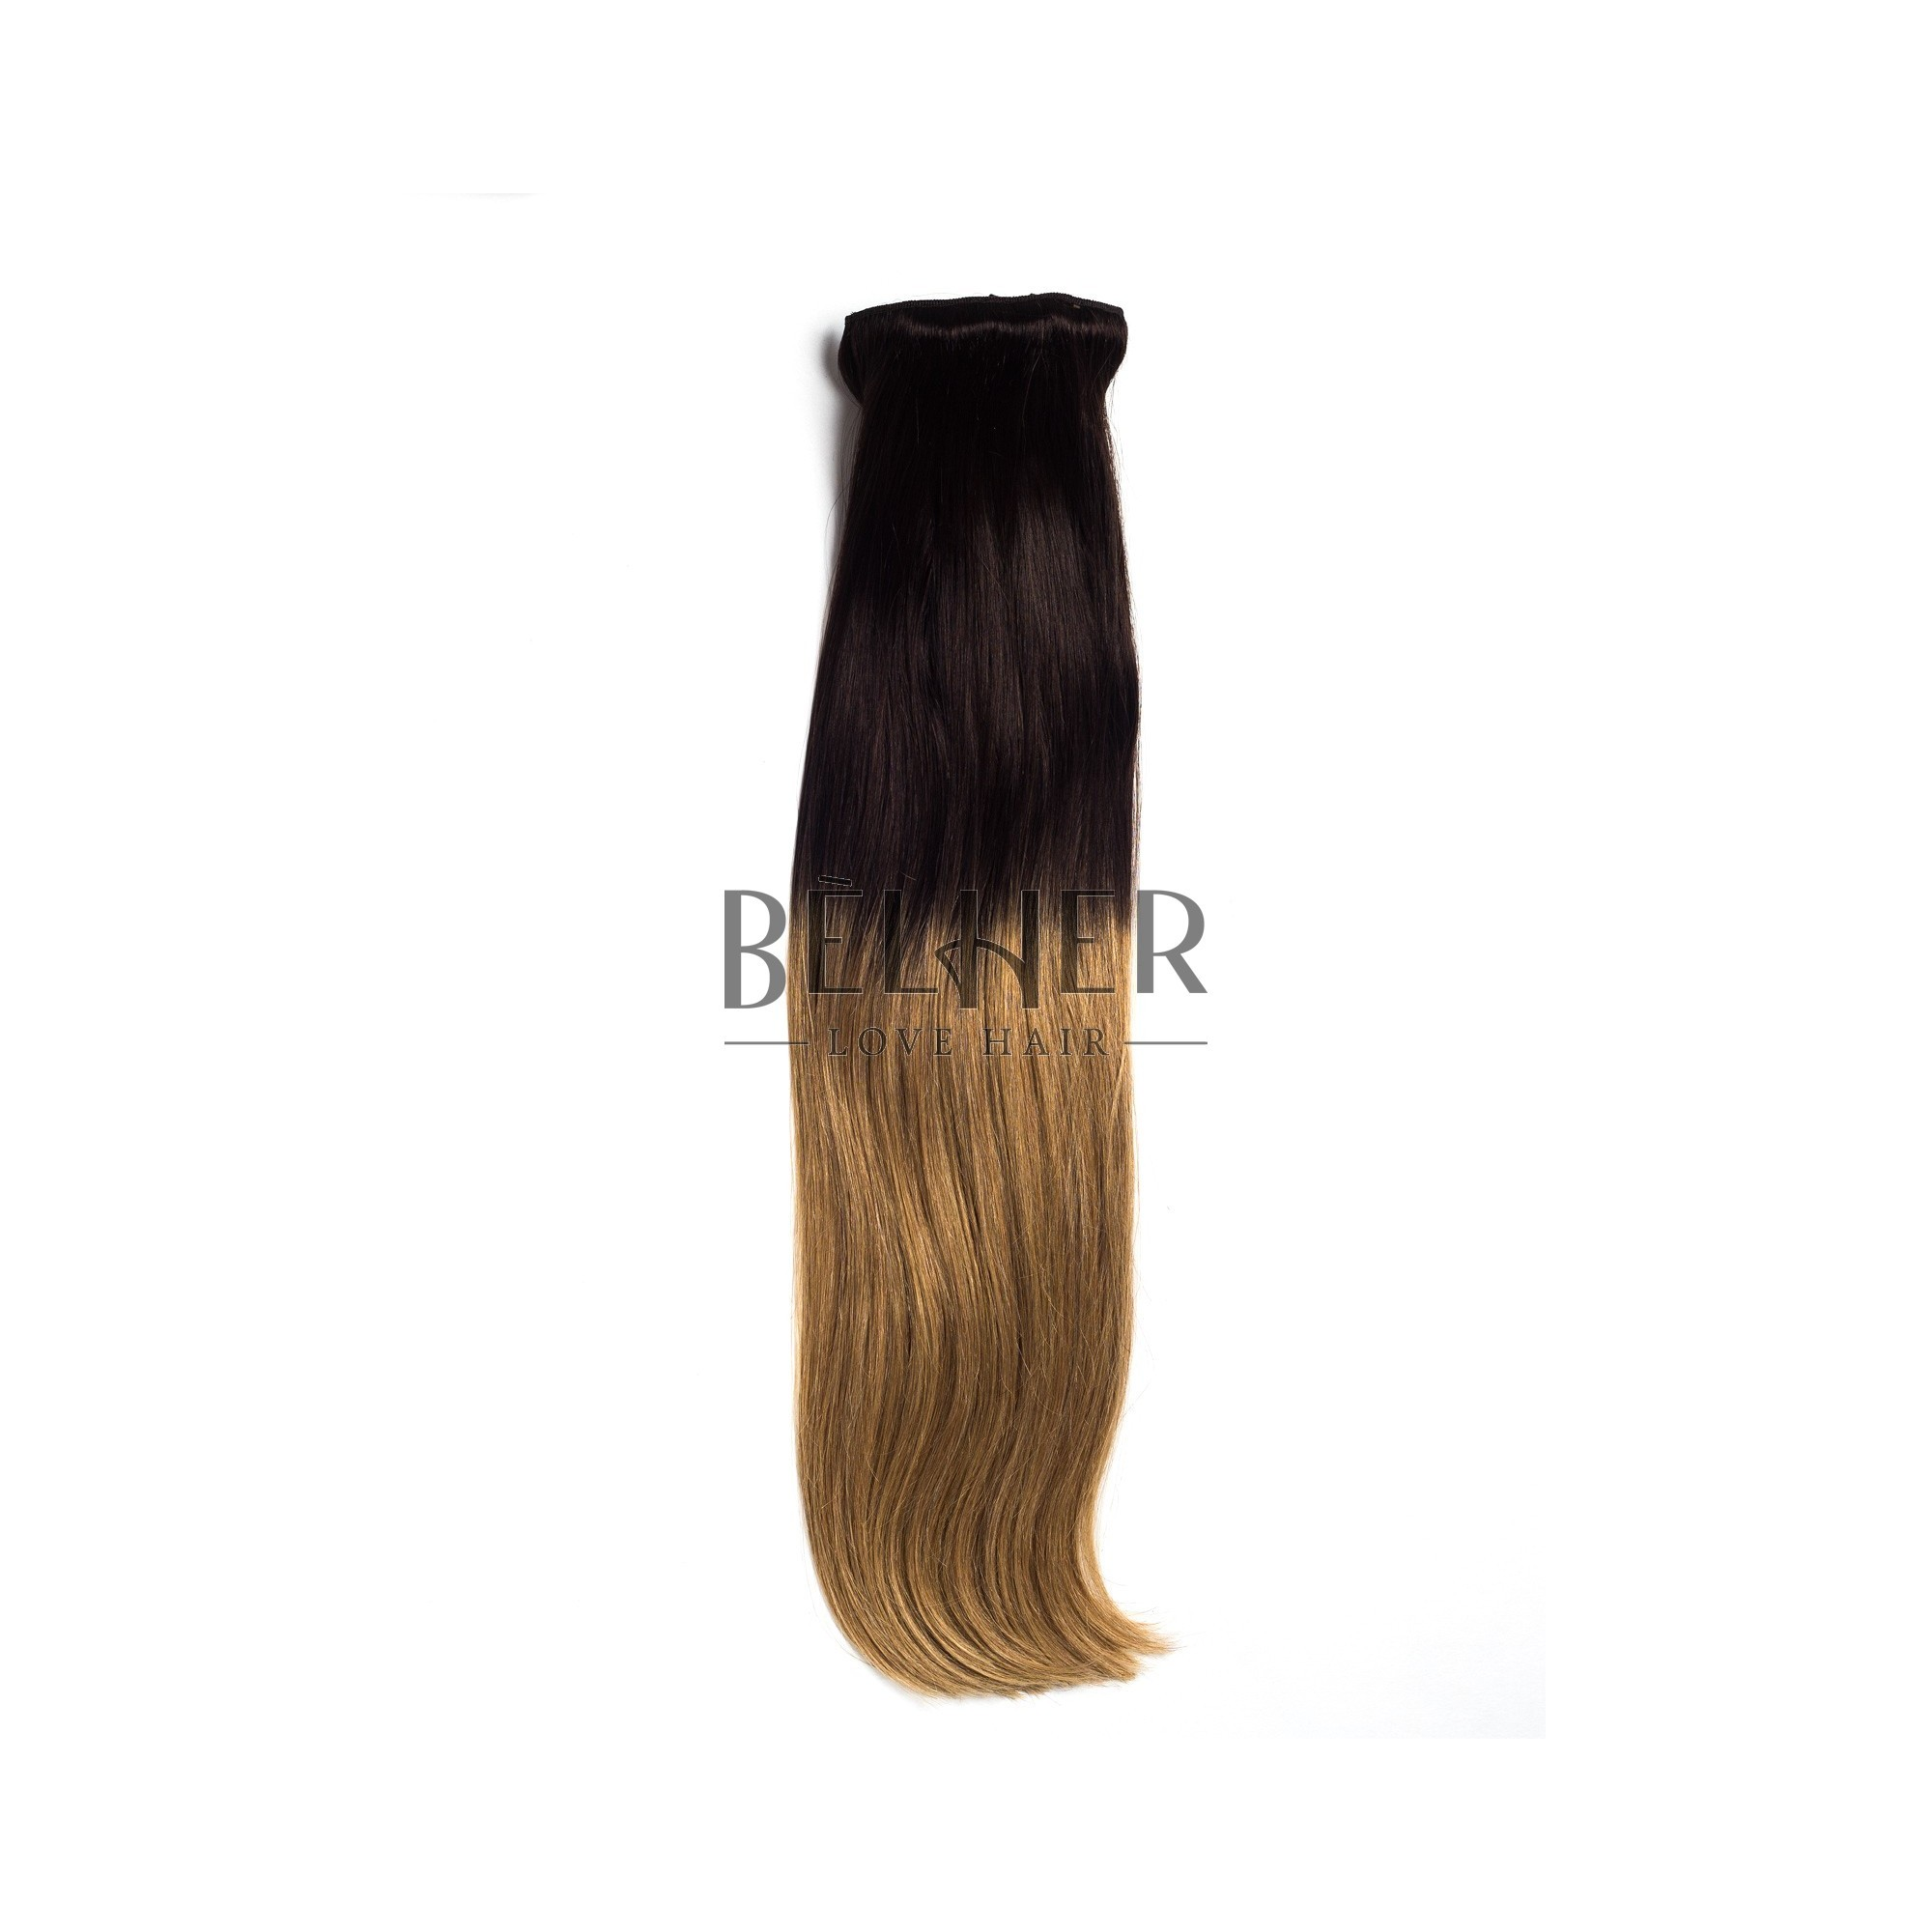 Extensii Clip-On Deluxe Ombre Saten Inchis/Blond Aluna